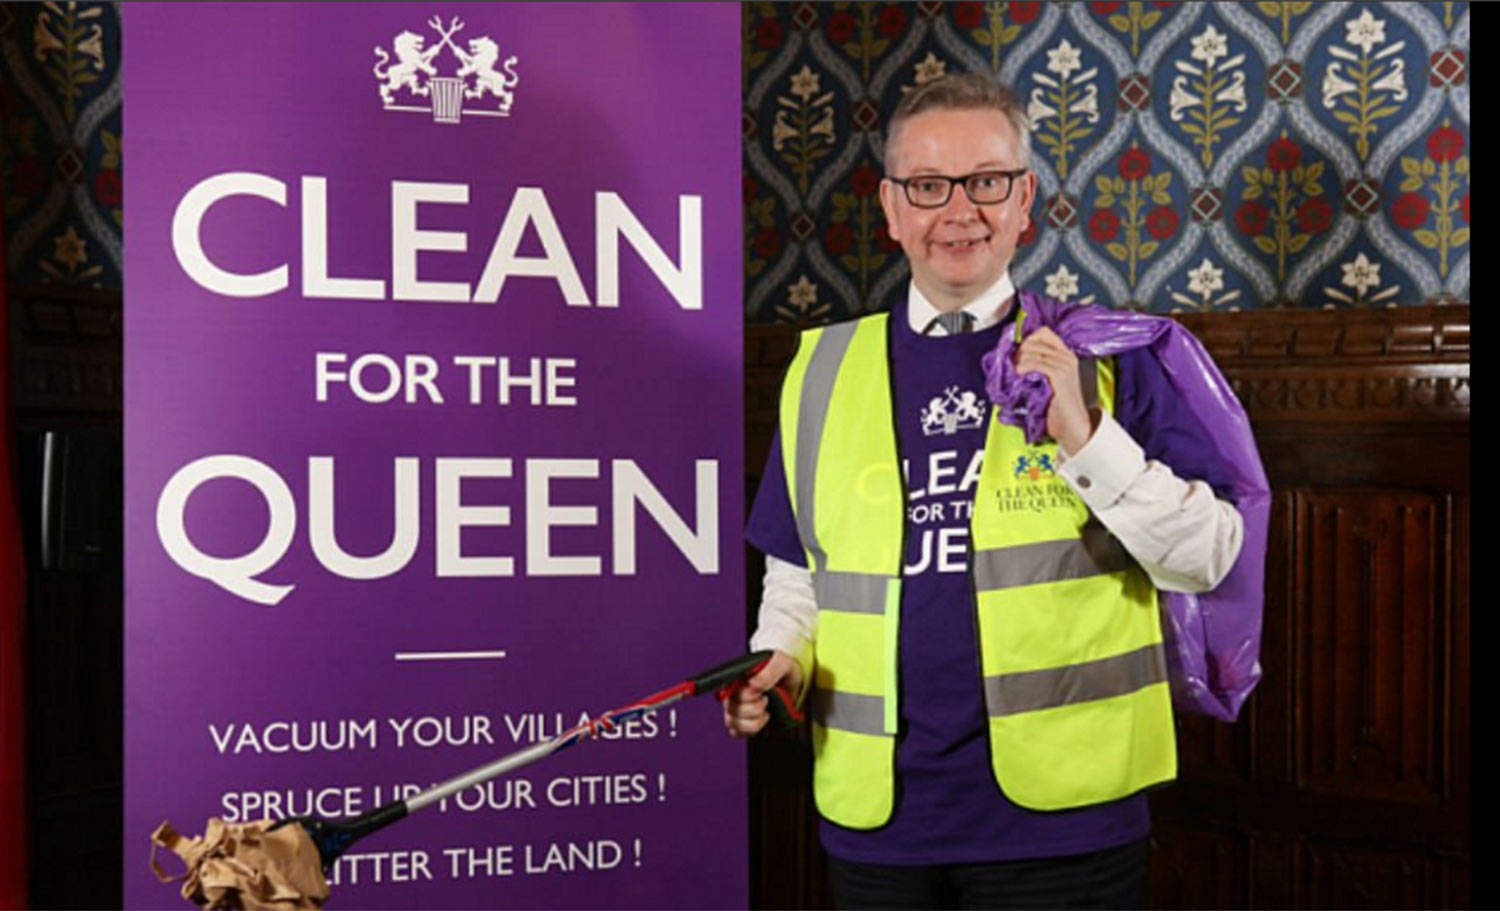 """The """"Clean for the Queen"""" campaign is Tory Britain at its worst"""